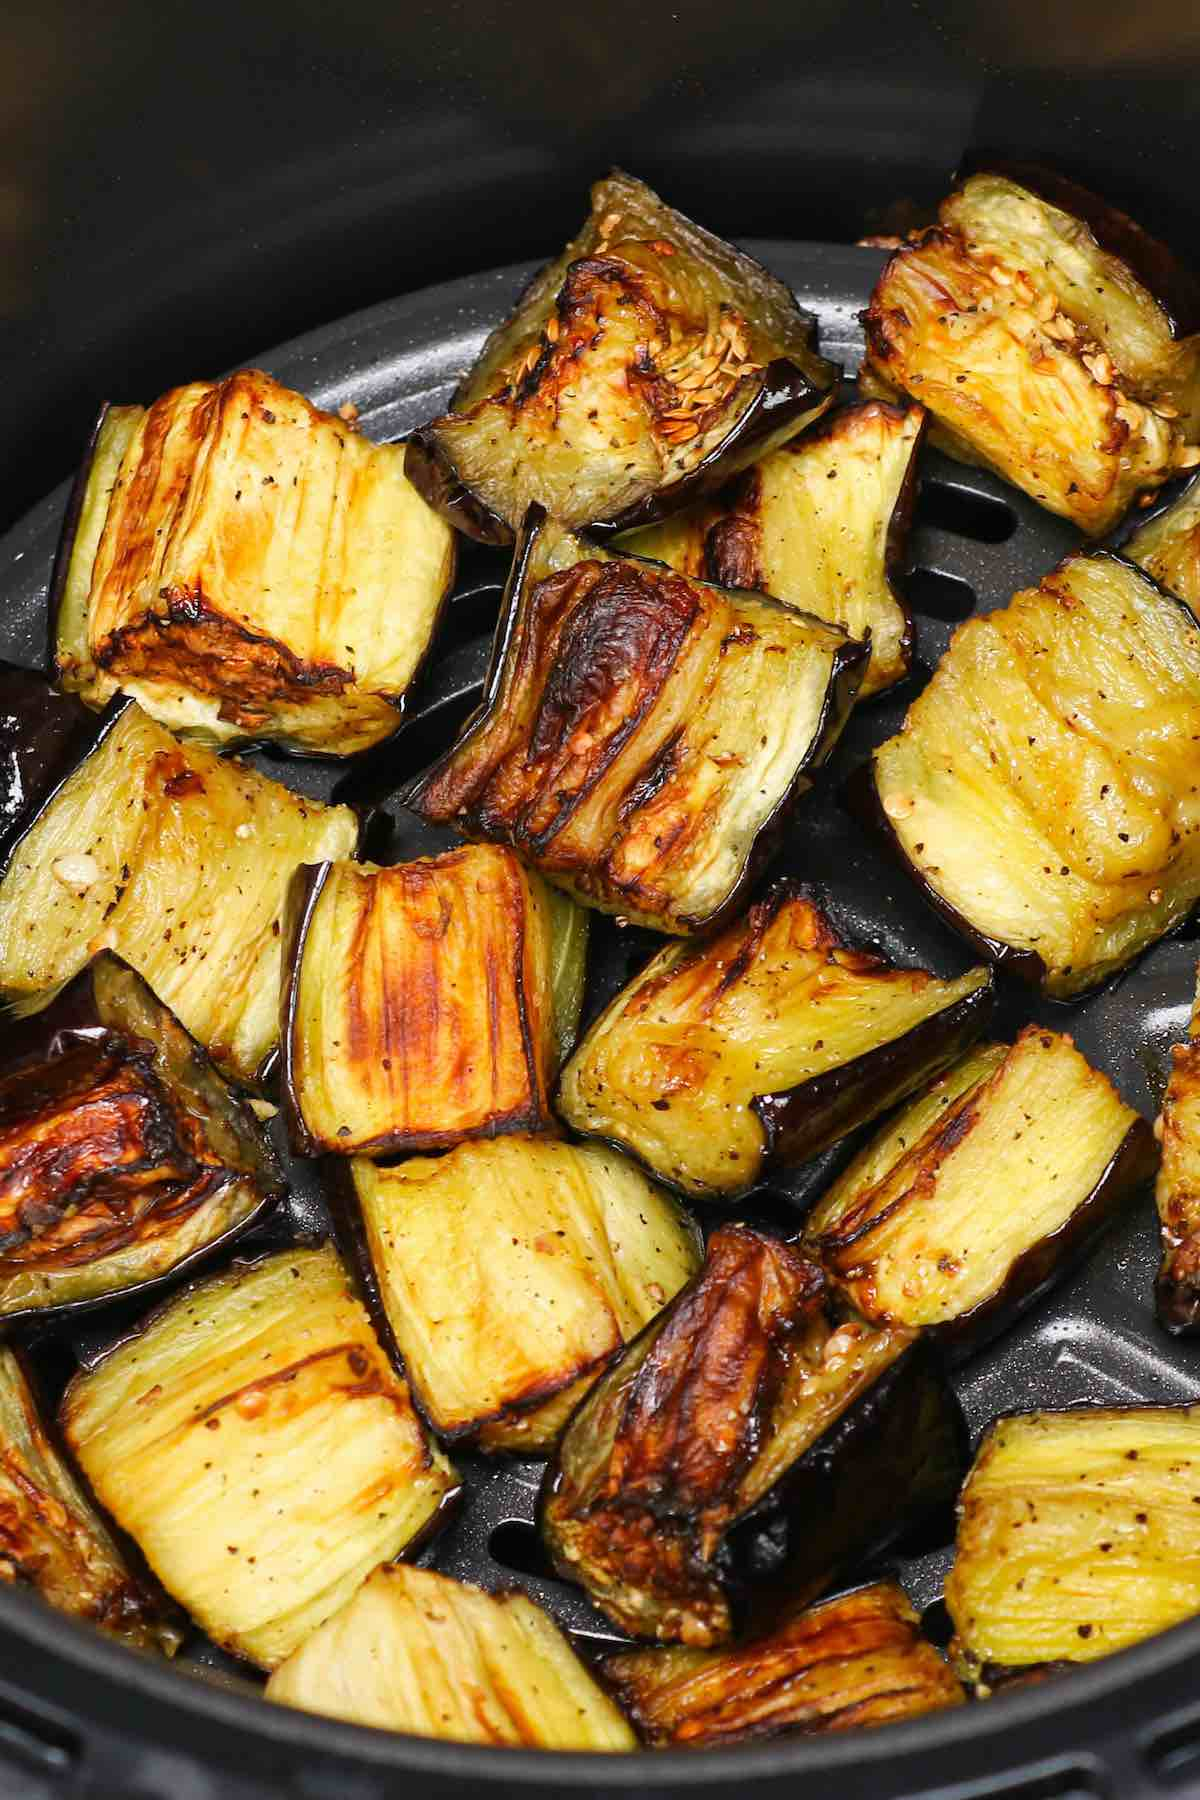 Beautifully caramelized pieces of seasoned eggplant in an air fryer basket #AirFryerEggplant